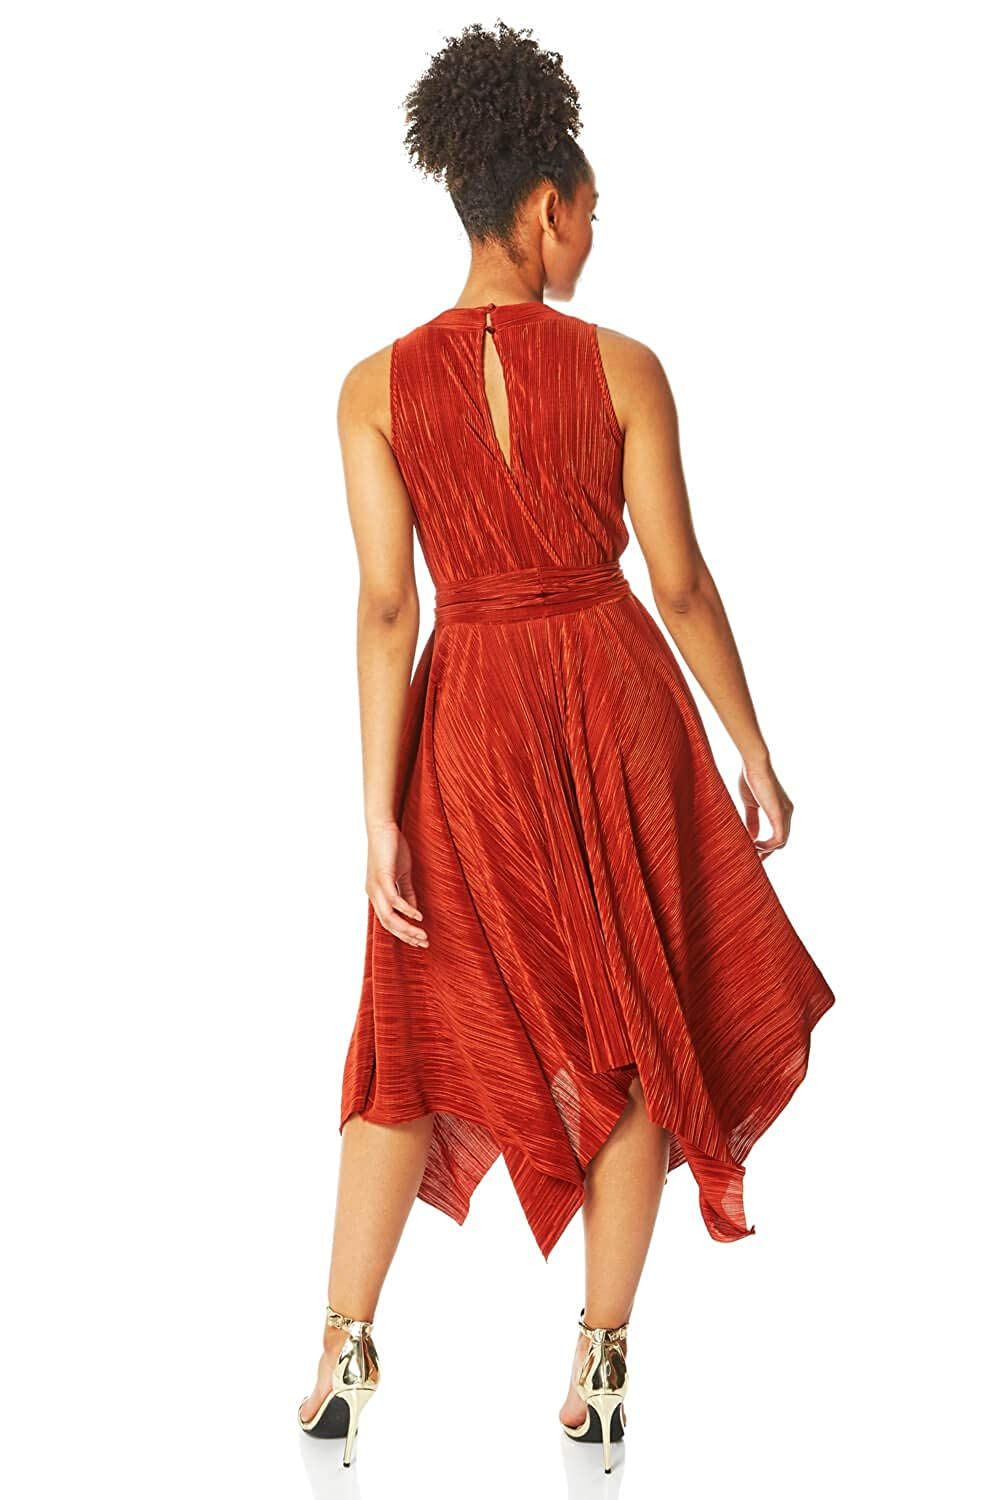 Ladies Special Occasion Shimmer Christmas Party Pleated Keyhole Back Sleeveless Asymmetrical Hem Fit and Flare Dresses Roman Originals Women Plisse Hanky Hem Midi Dress